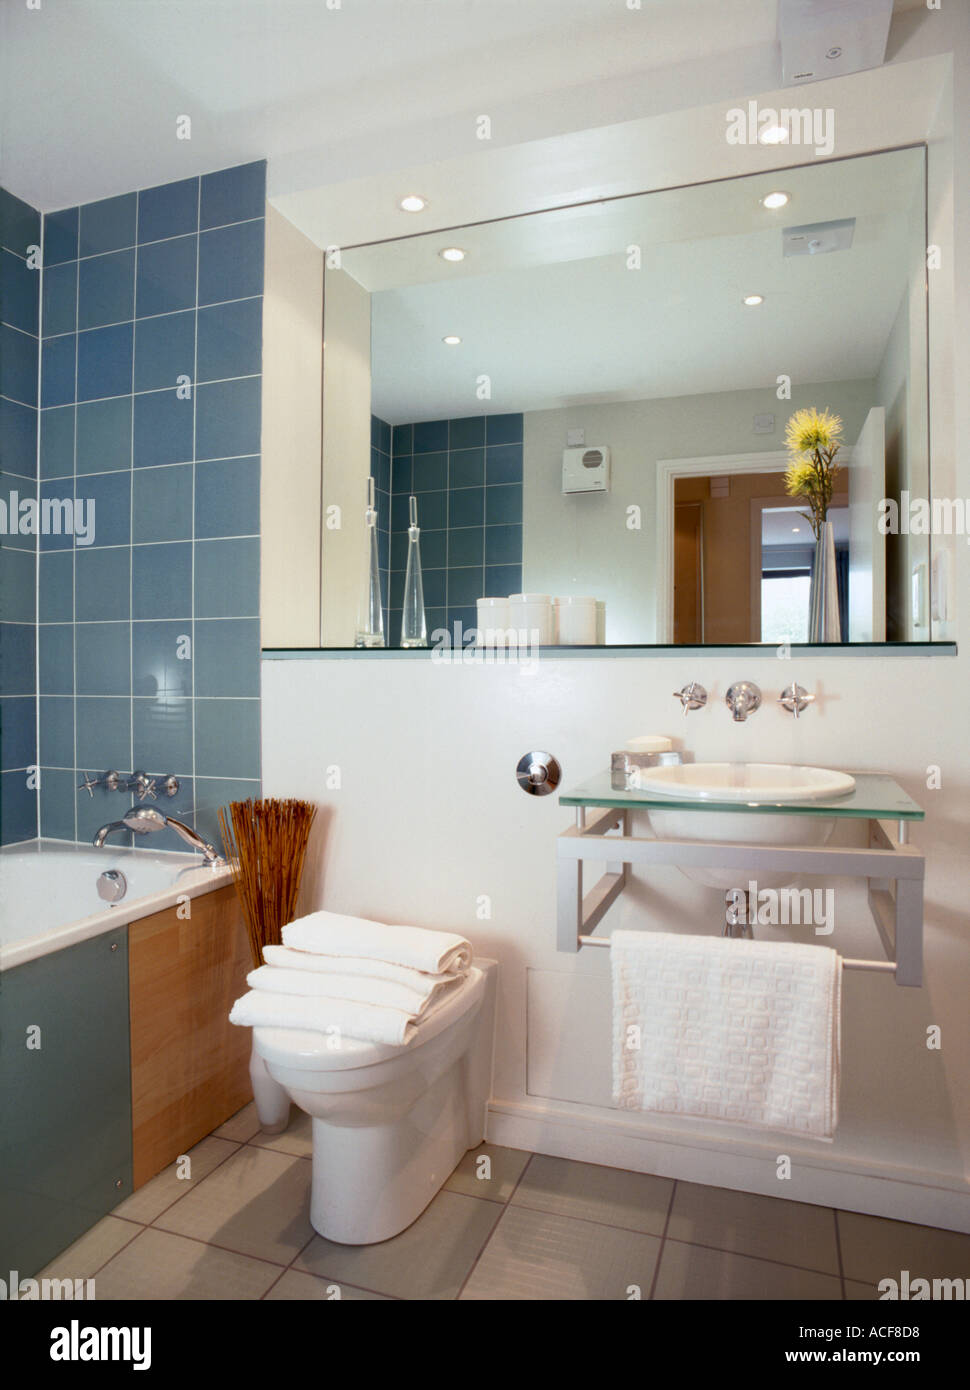 London show flat showing interior of designer bathroom England Stock ...